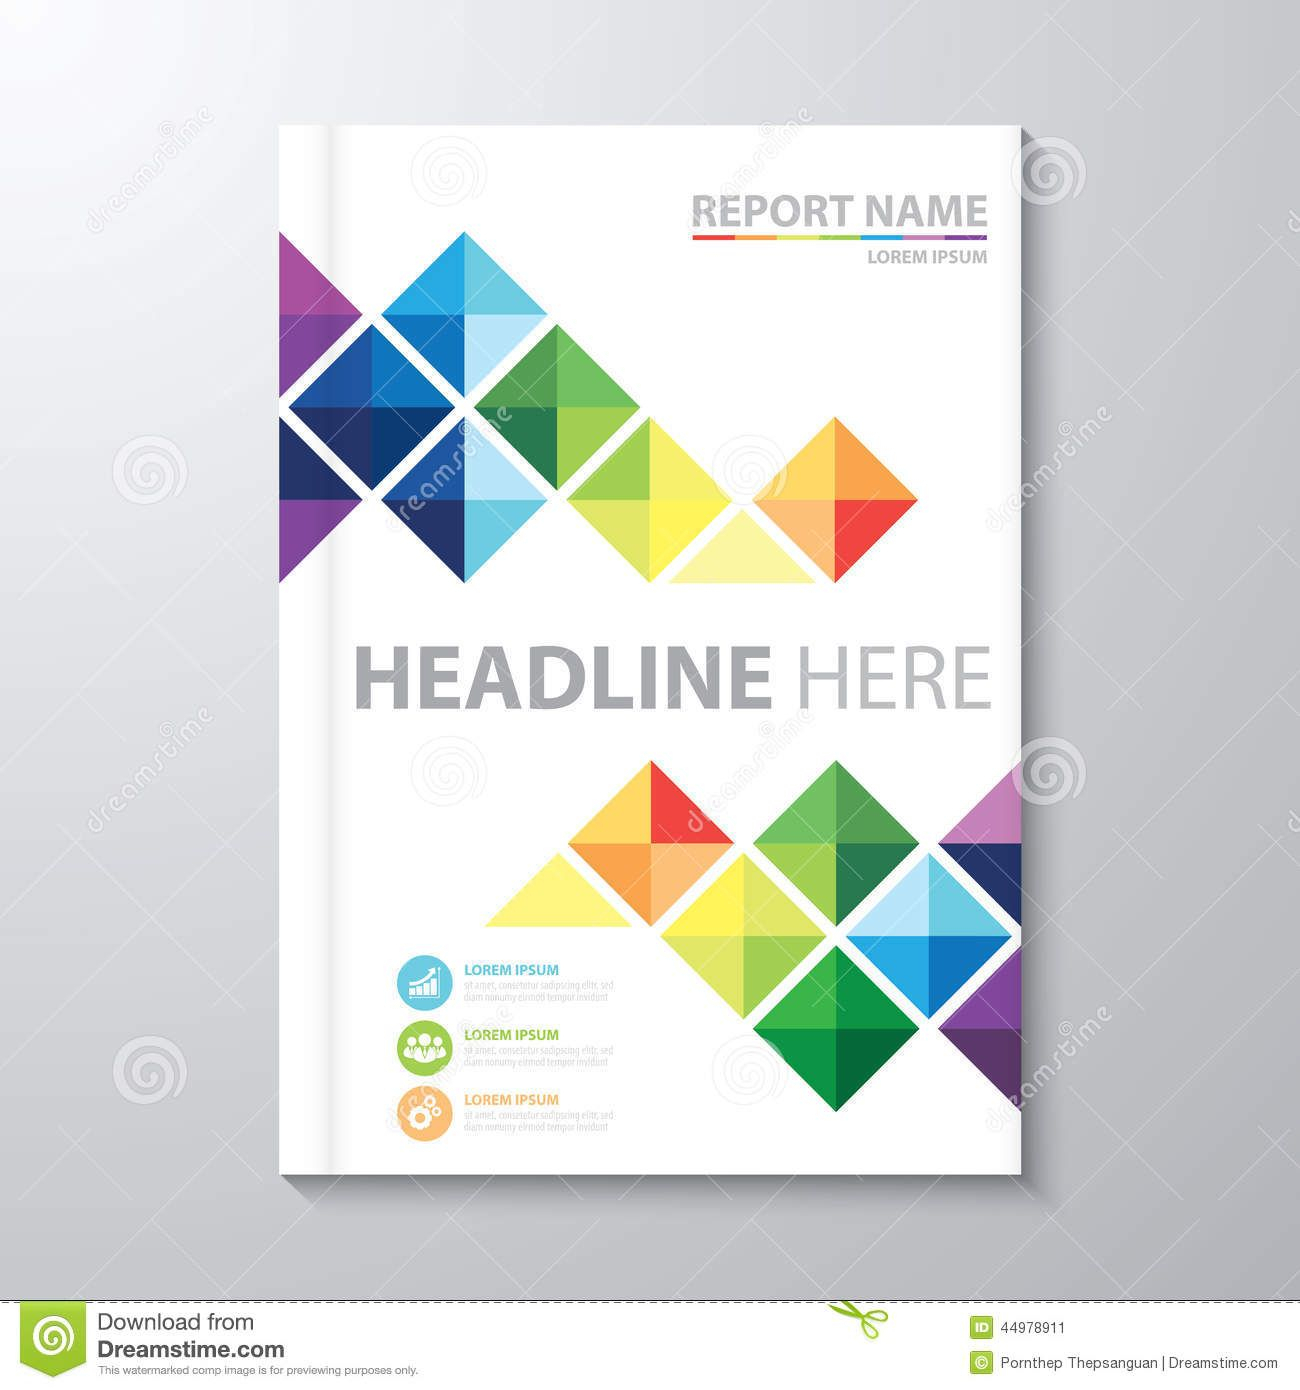 011 Template Ideas Report Cover Page Archaicawful Microsoft With Regard To Annual Report Template Word Free Download